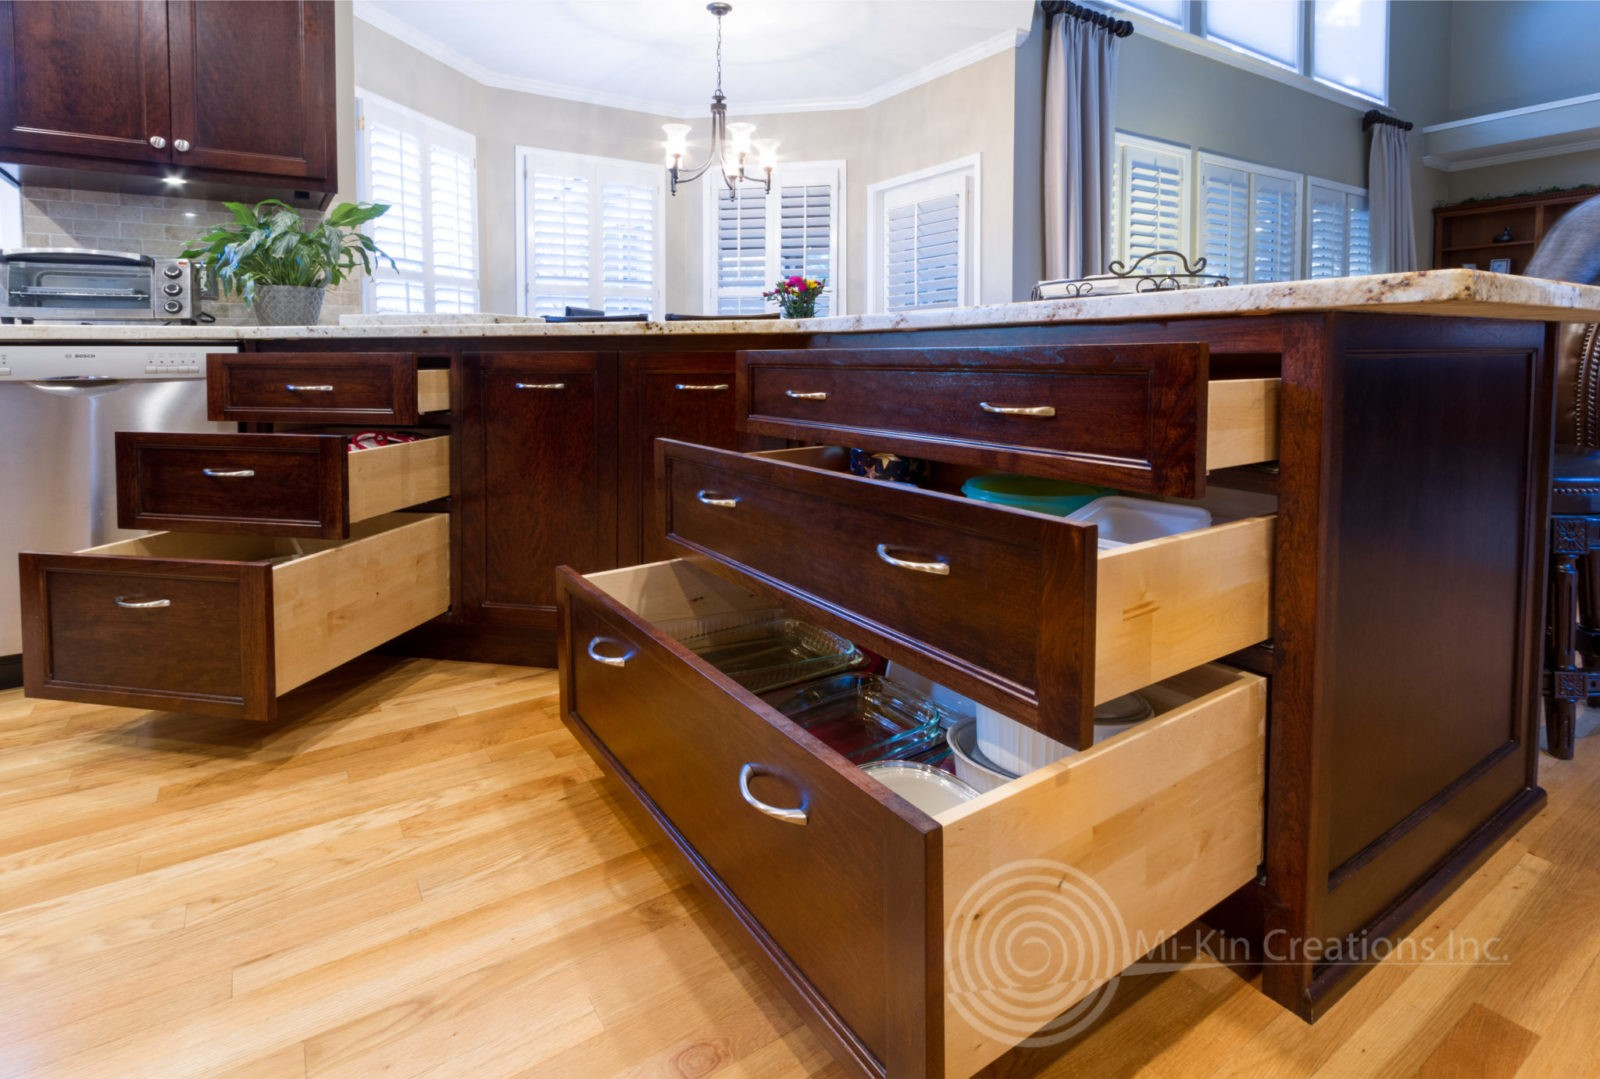 Traditional Kitchen cabinets with sliding drawers